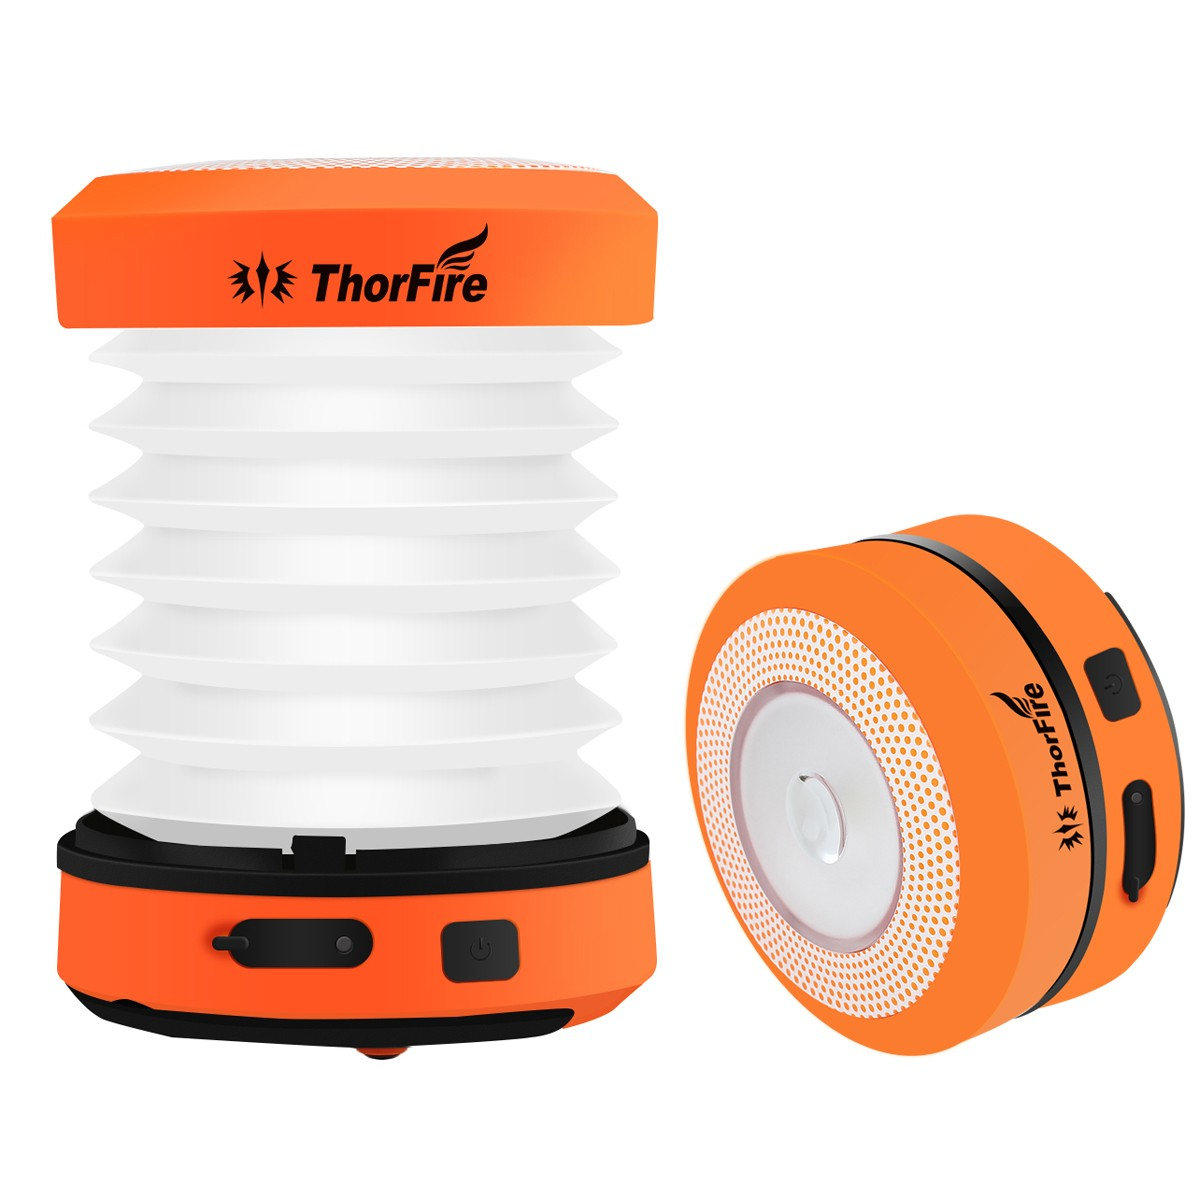 ThorFire 30-125LM LED Camping Lantern DC 5V USB Rechargeable Mini Flashlight Torch Light Lamp CL01 Collapsible Hand Crank Hiking rechargeable mini led hand crank solar powered flashlight torch emergency light for outdoor camping hiking cycling